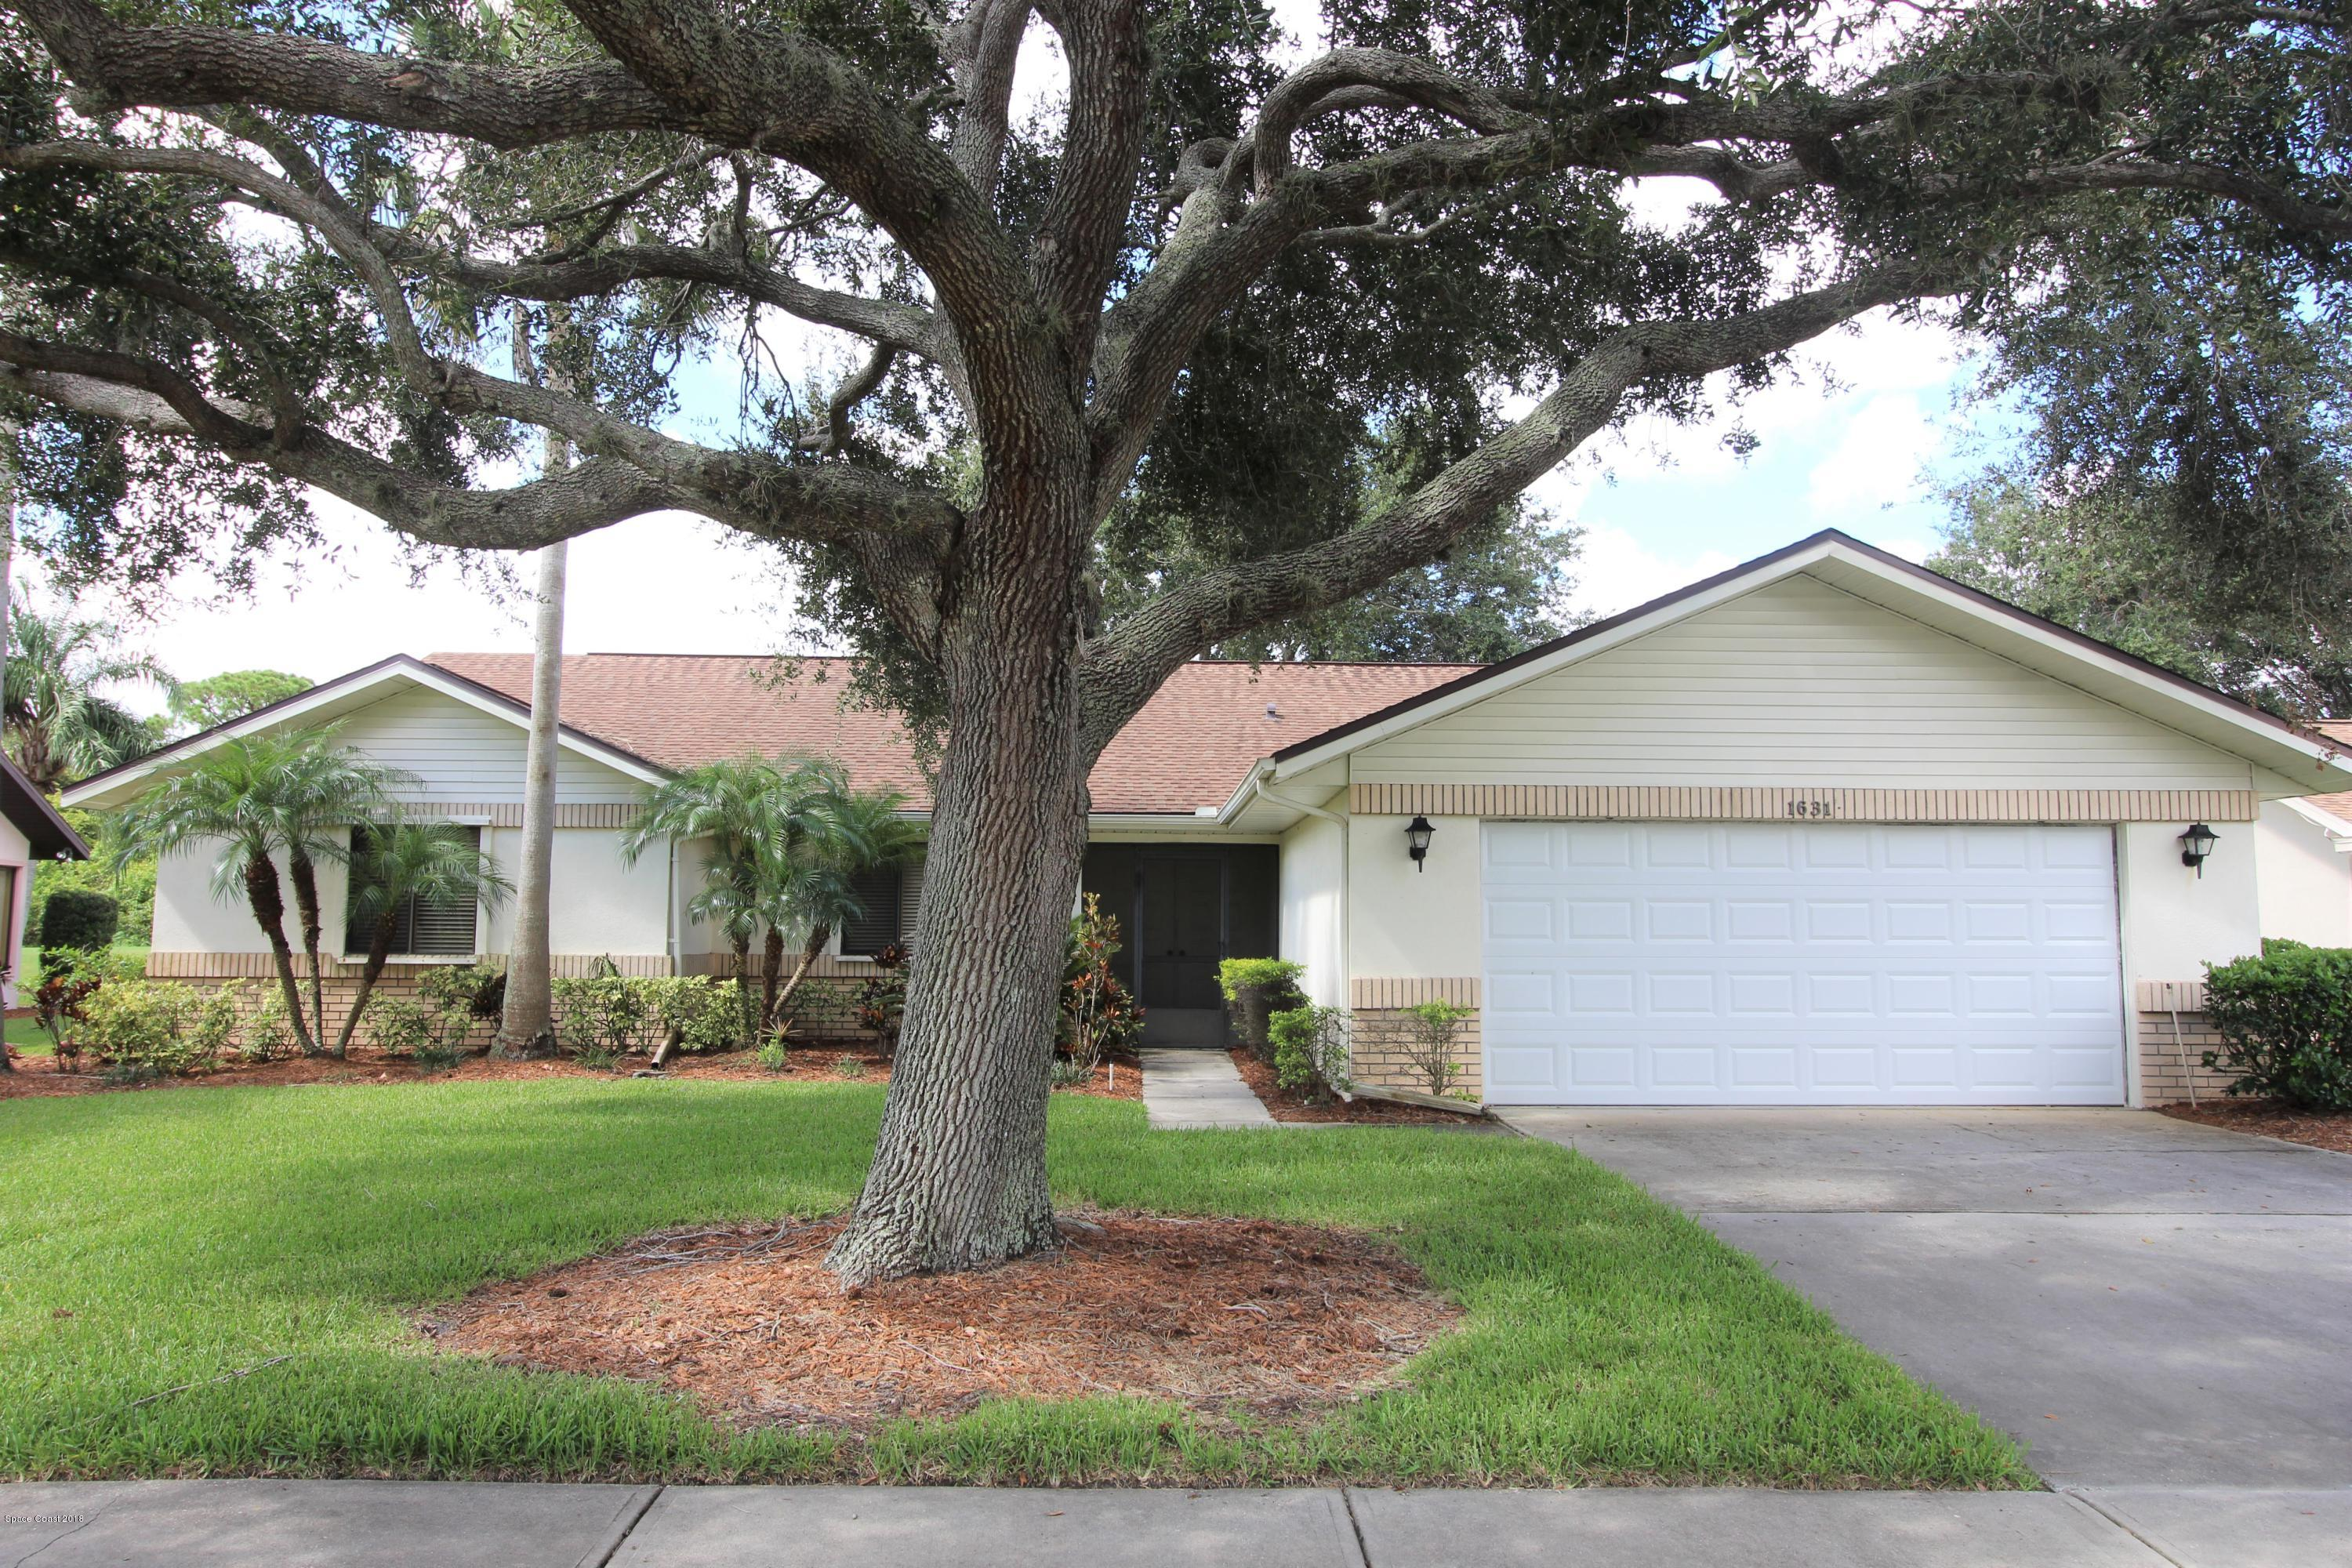 Single Family Home for Sale at 1631 Frontier 1631 Frontier Melbourne, Florida 32940 United States